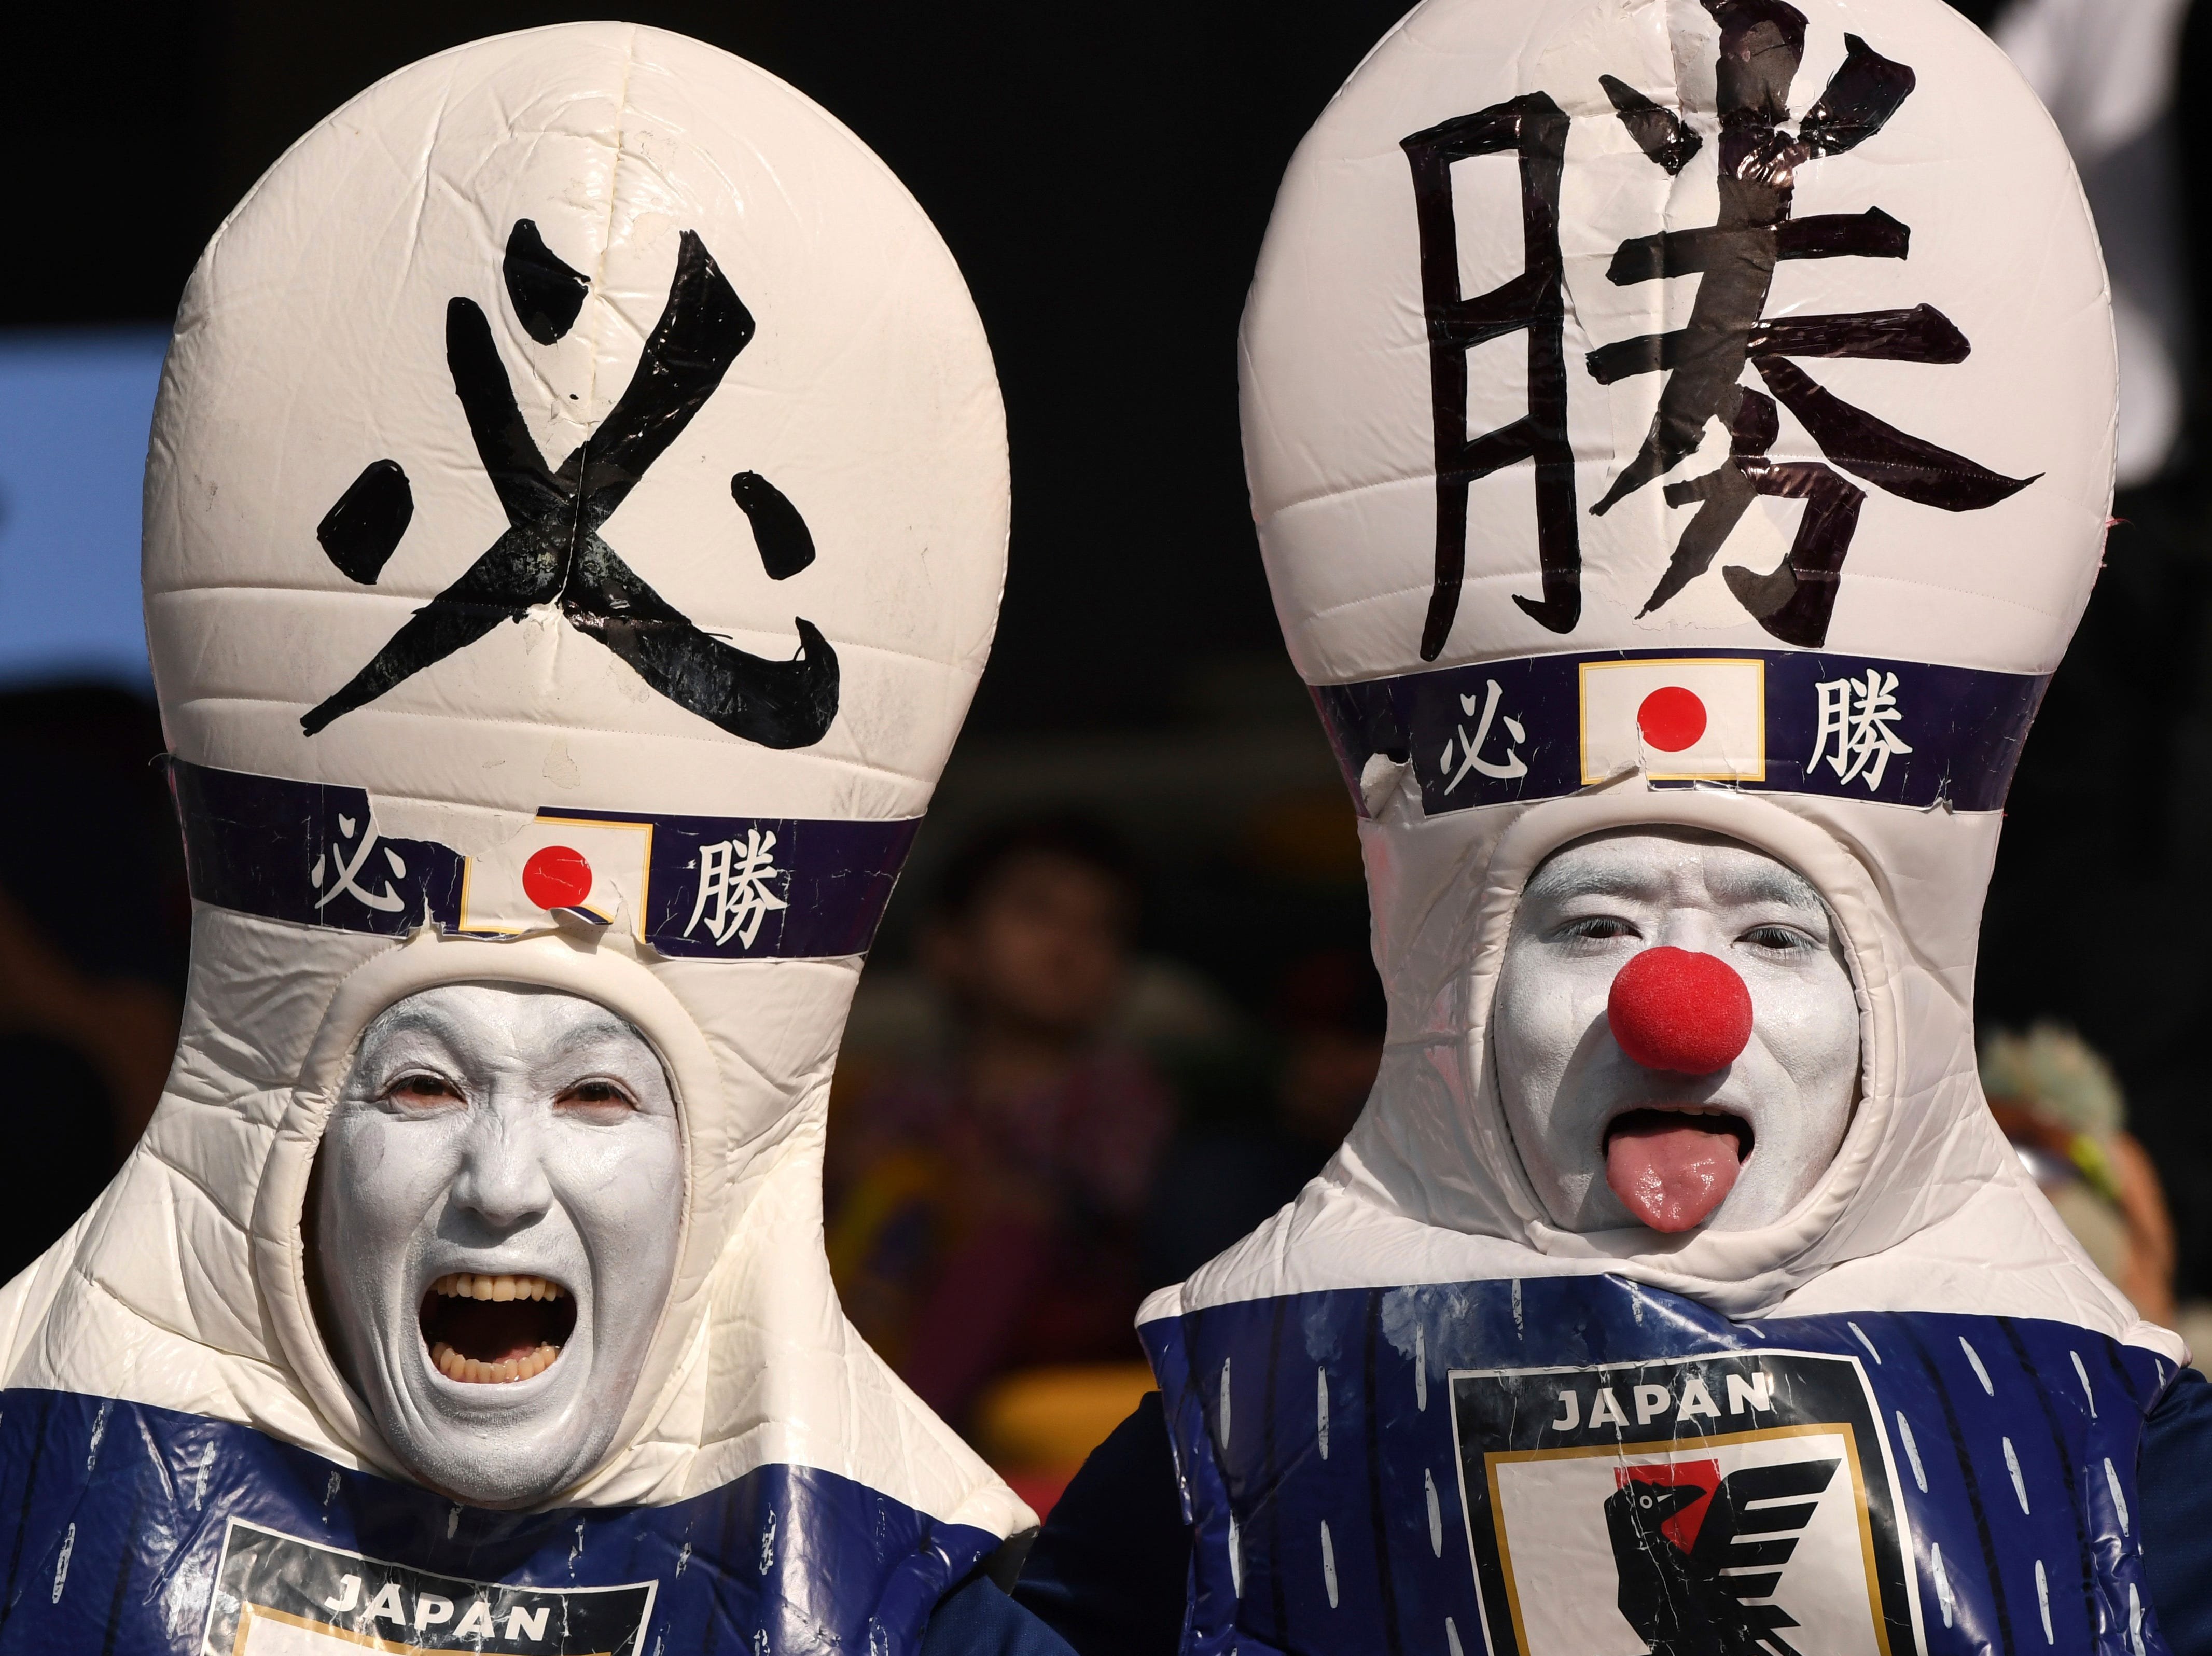 Fans of Japan make grimaces prior the start of the AFC Asian Cup final match between Japan and Qatar in Zayed Sport City in Abu Dhabi, United Arab Emirates, Friday, Feb. 1, 2019.